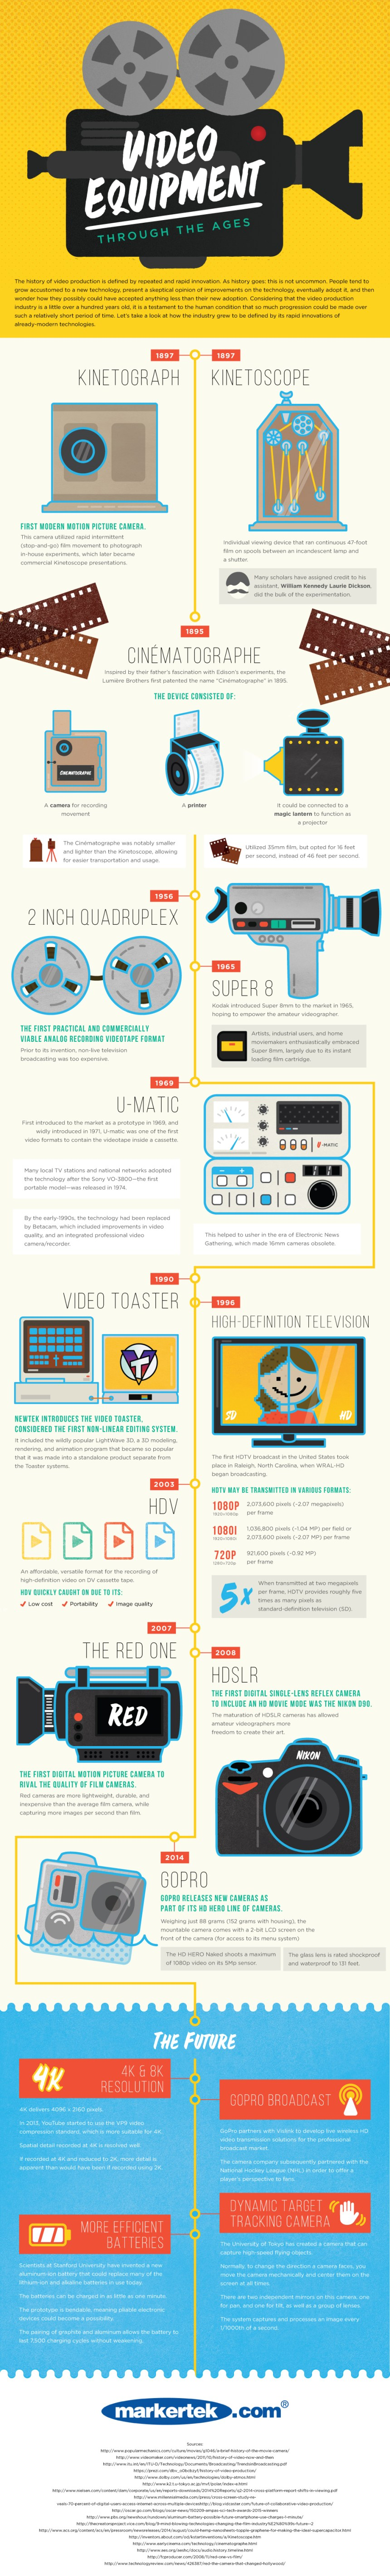 Video Equipment Through the Ages